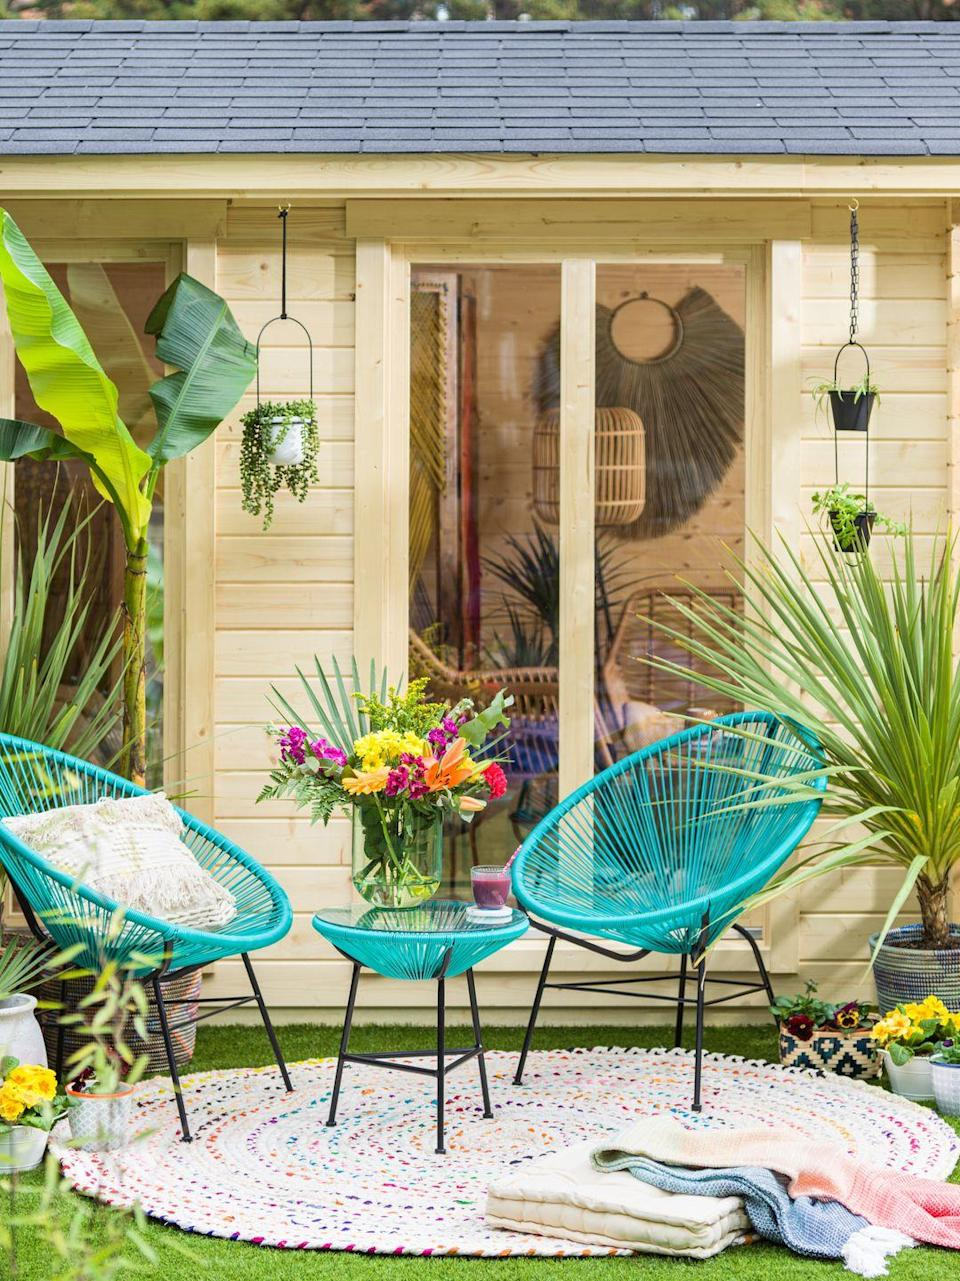 <p>AJ, who describes her style as 'bright and bold', takes a lot of inspiration from her wardrobe: 'I figured that if I use bright, strong patterned palettes that I love to wear I will never bore of seeing them in my furnishings.'</p>